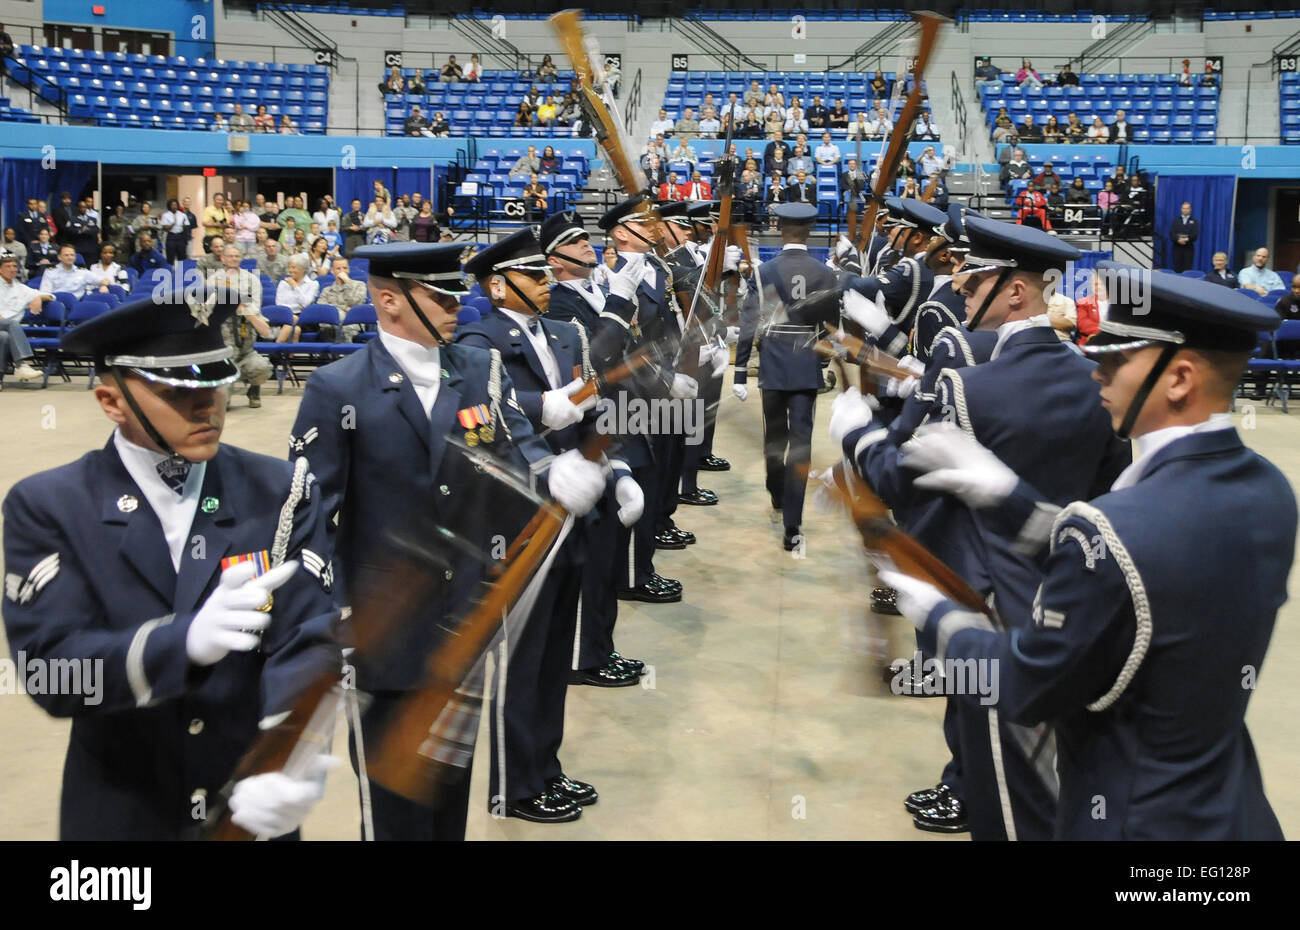 The U.S Air Force Drill Team Performs at Hampton University to begin Air Force Week in Hampton Virginia April 18, - Stock Image